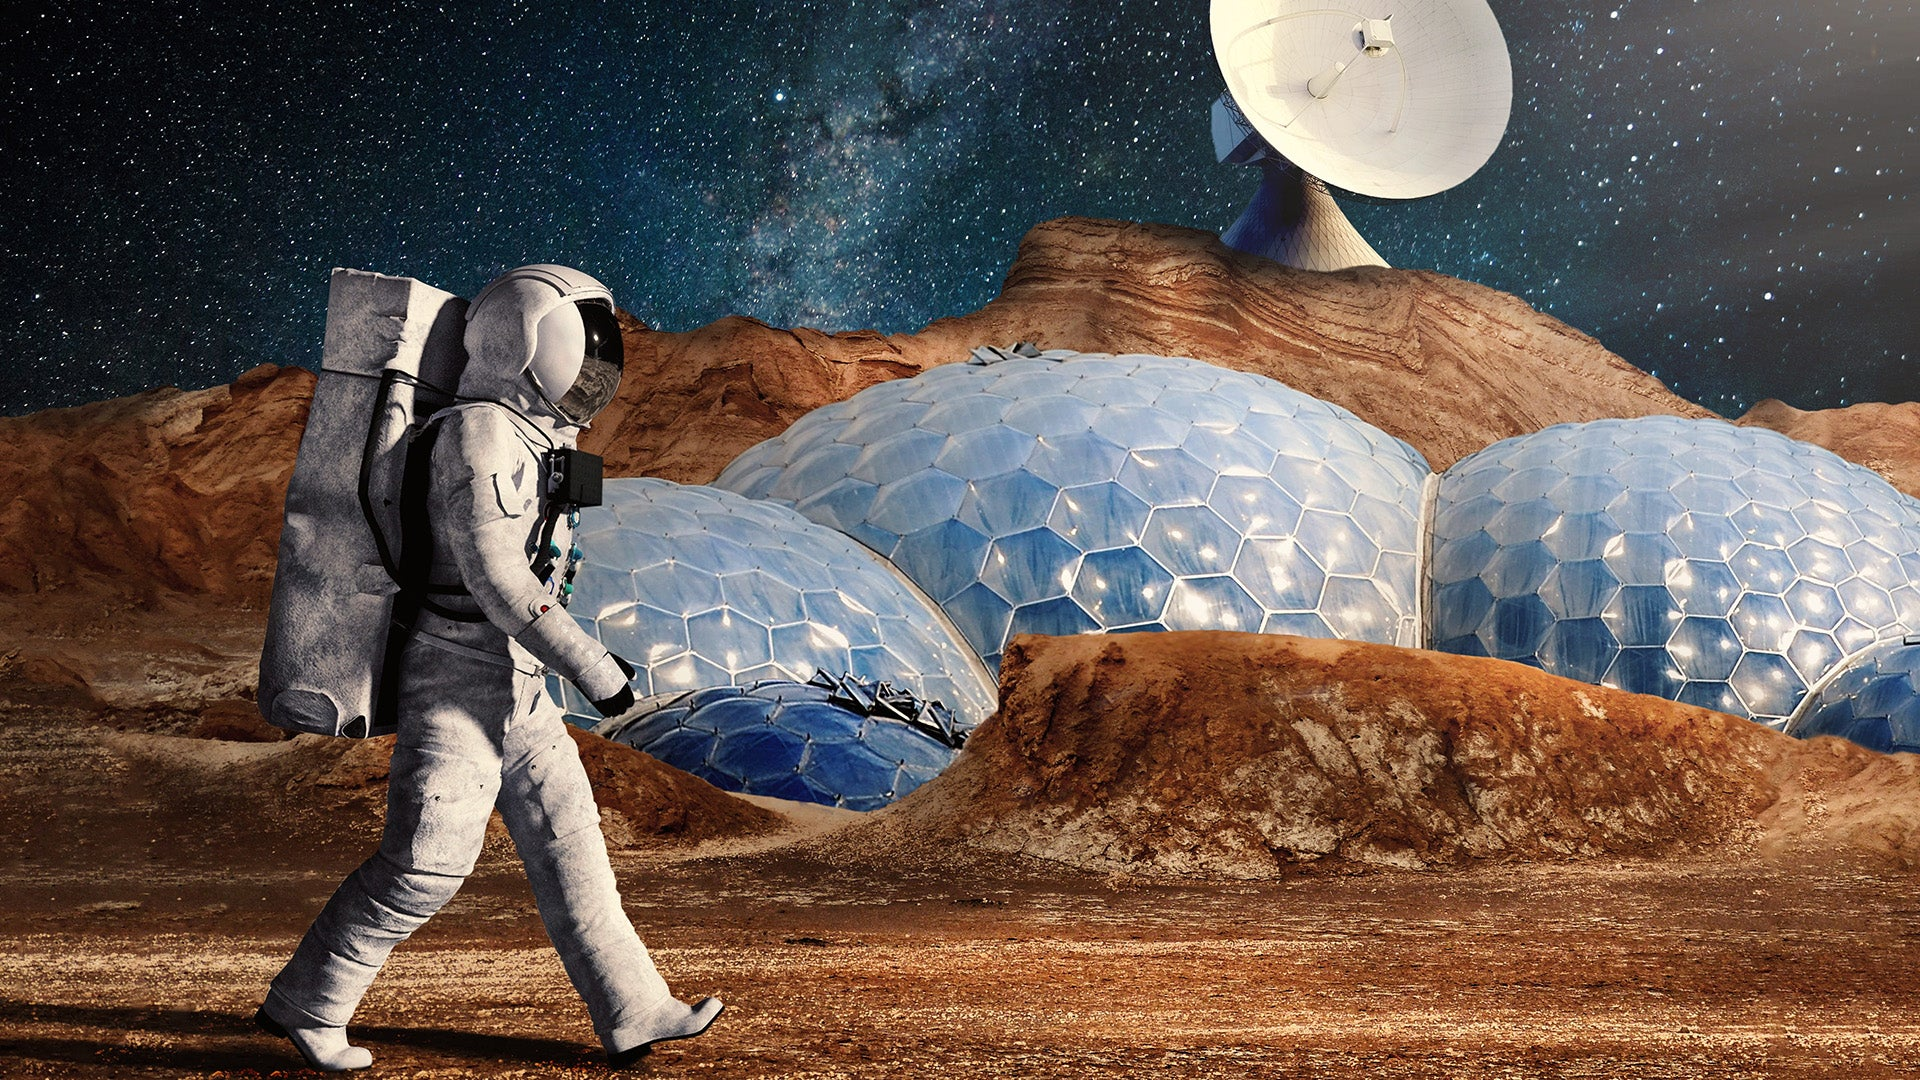 A futuristic impression of an astronaut walking past an artificial colony on another planet